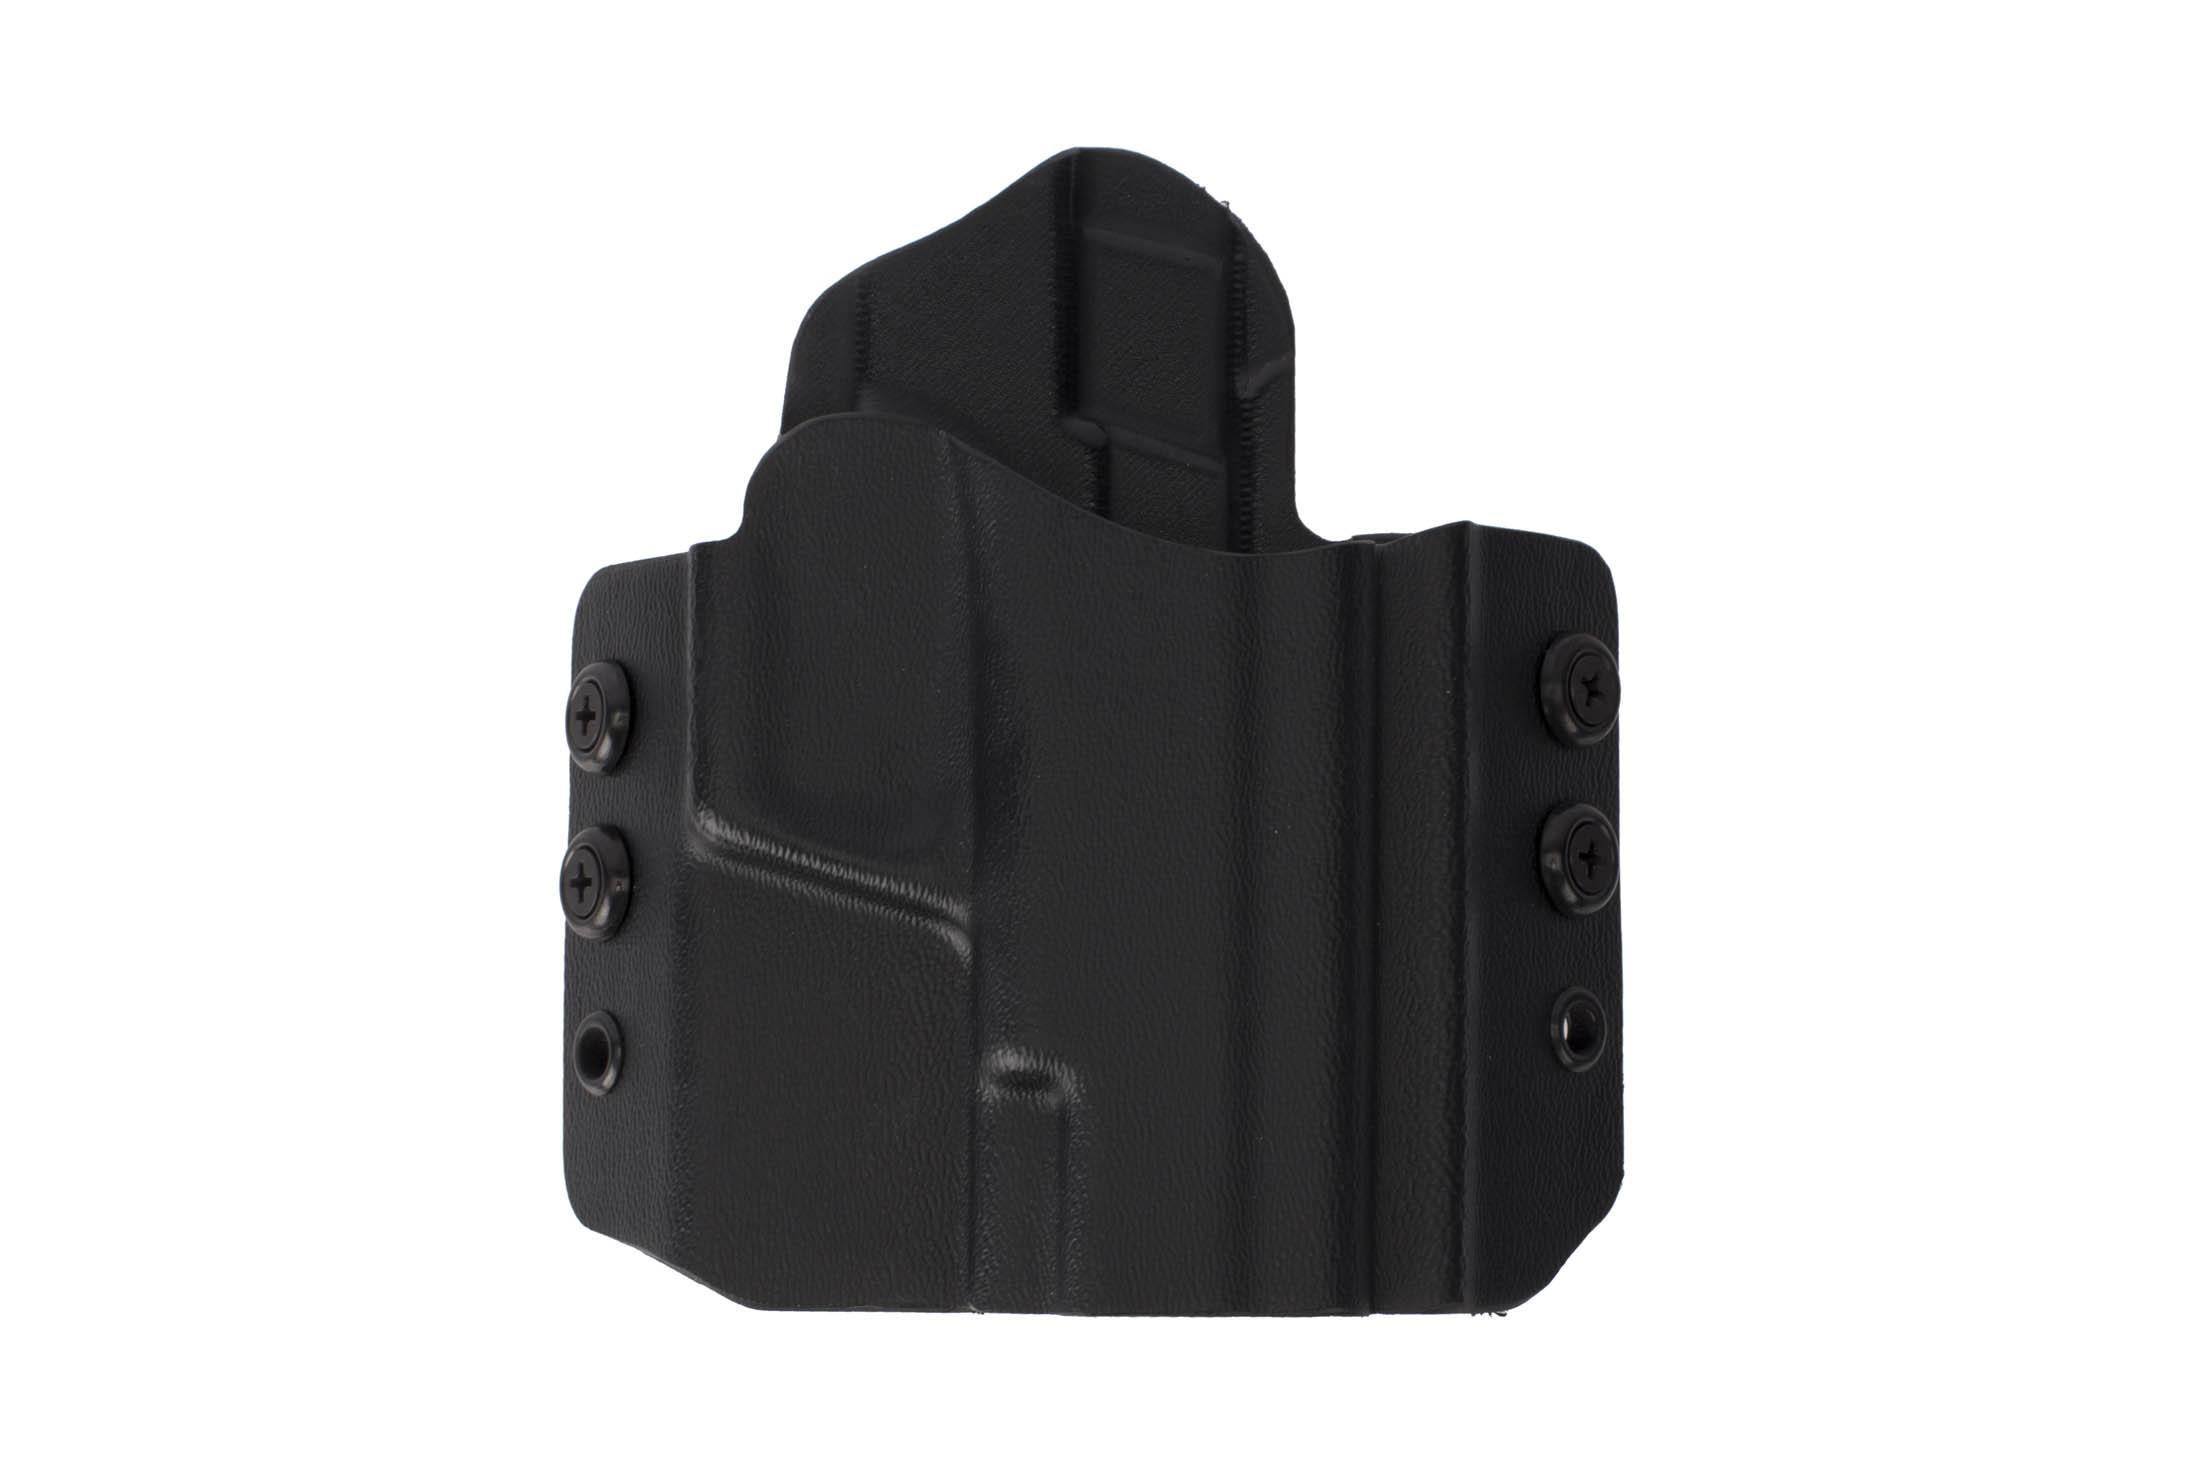 HSGI's black OWB Holster securely holds your compact Smith & Wesson pistol, perfect for right handed draw